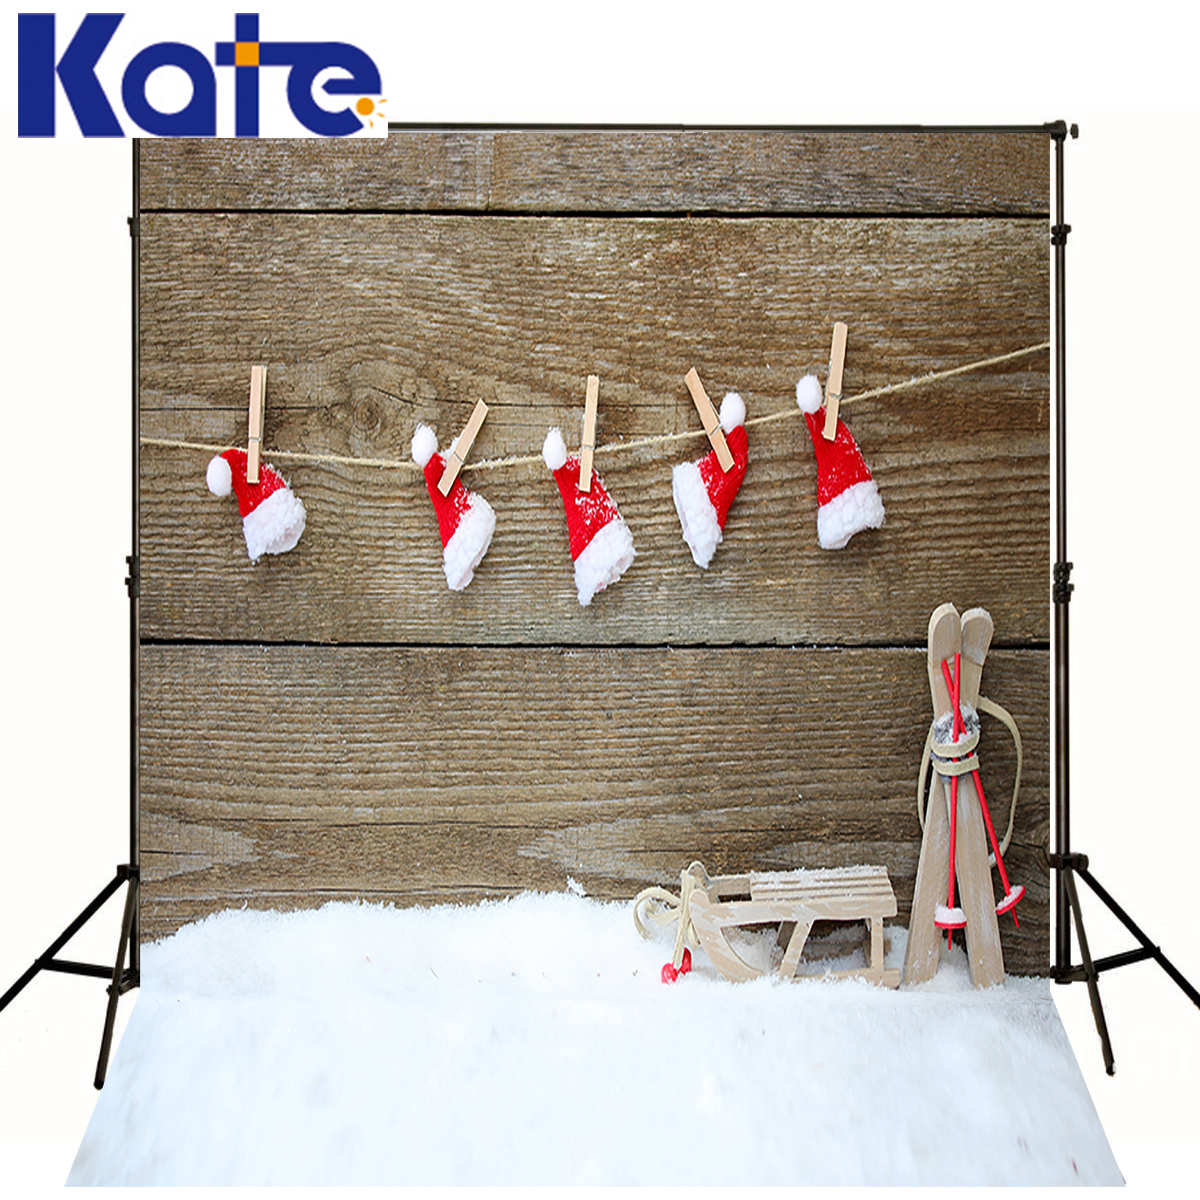 Kate Christmas Background Photography Winter Snow Floor Sled Scenery backdrops Red Hat Wood Wall Backgrounds for photo Studio<br>